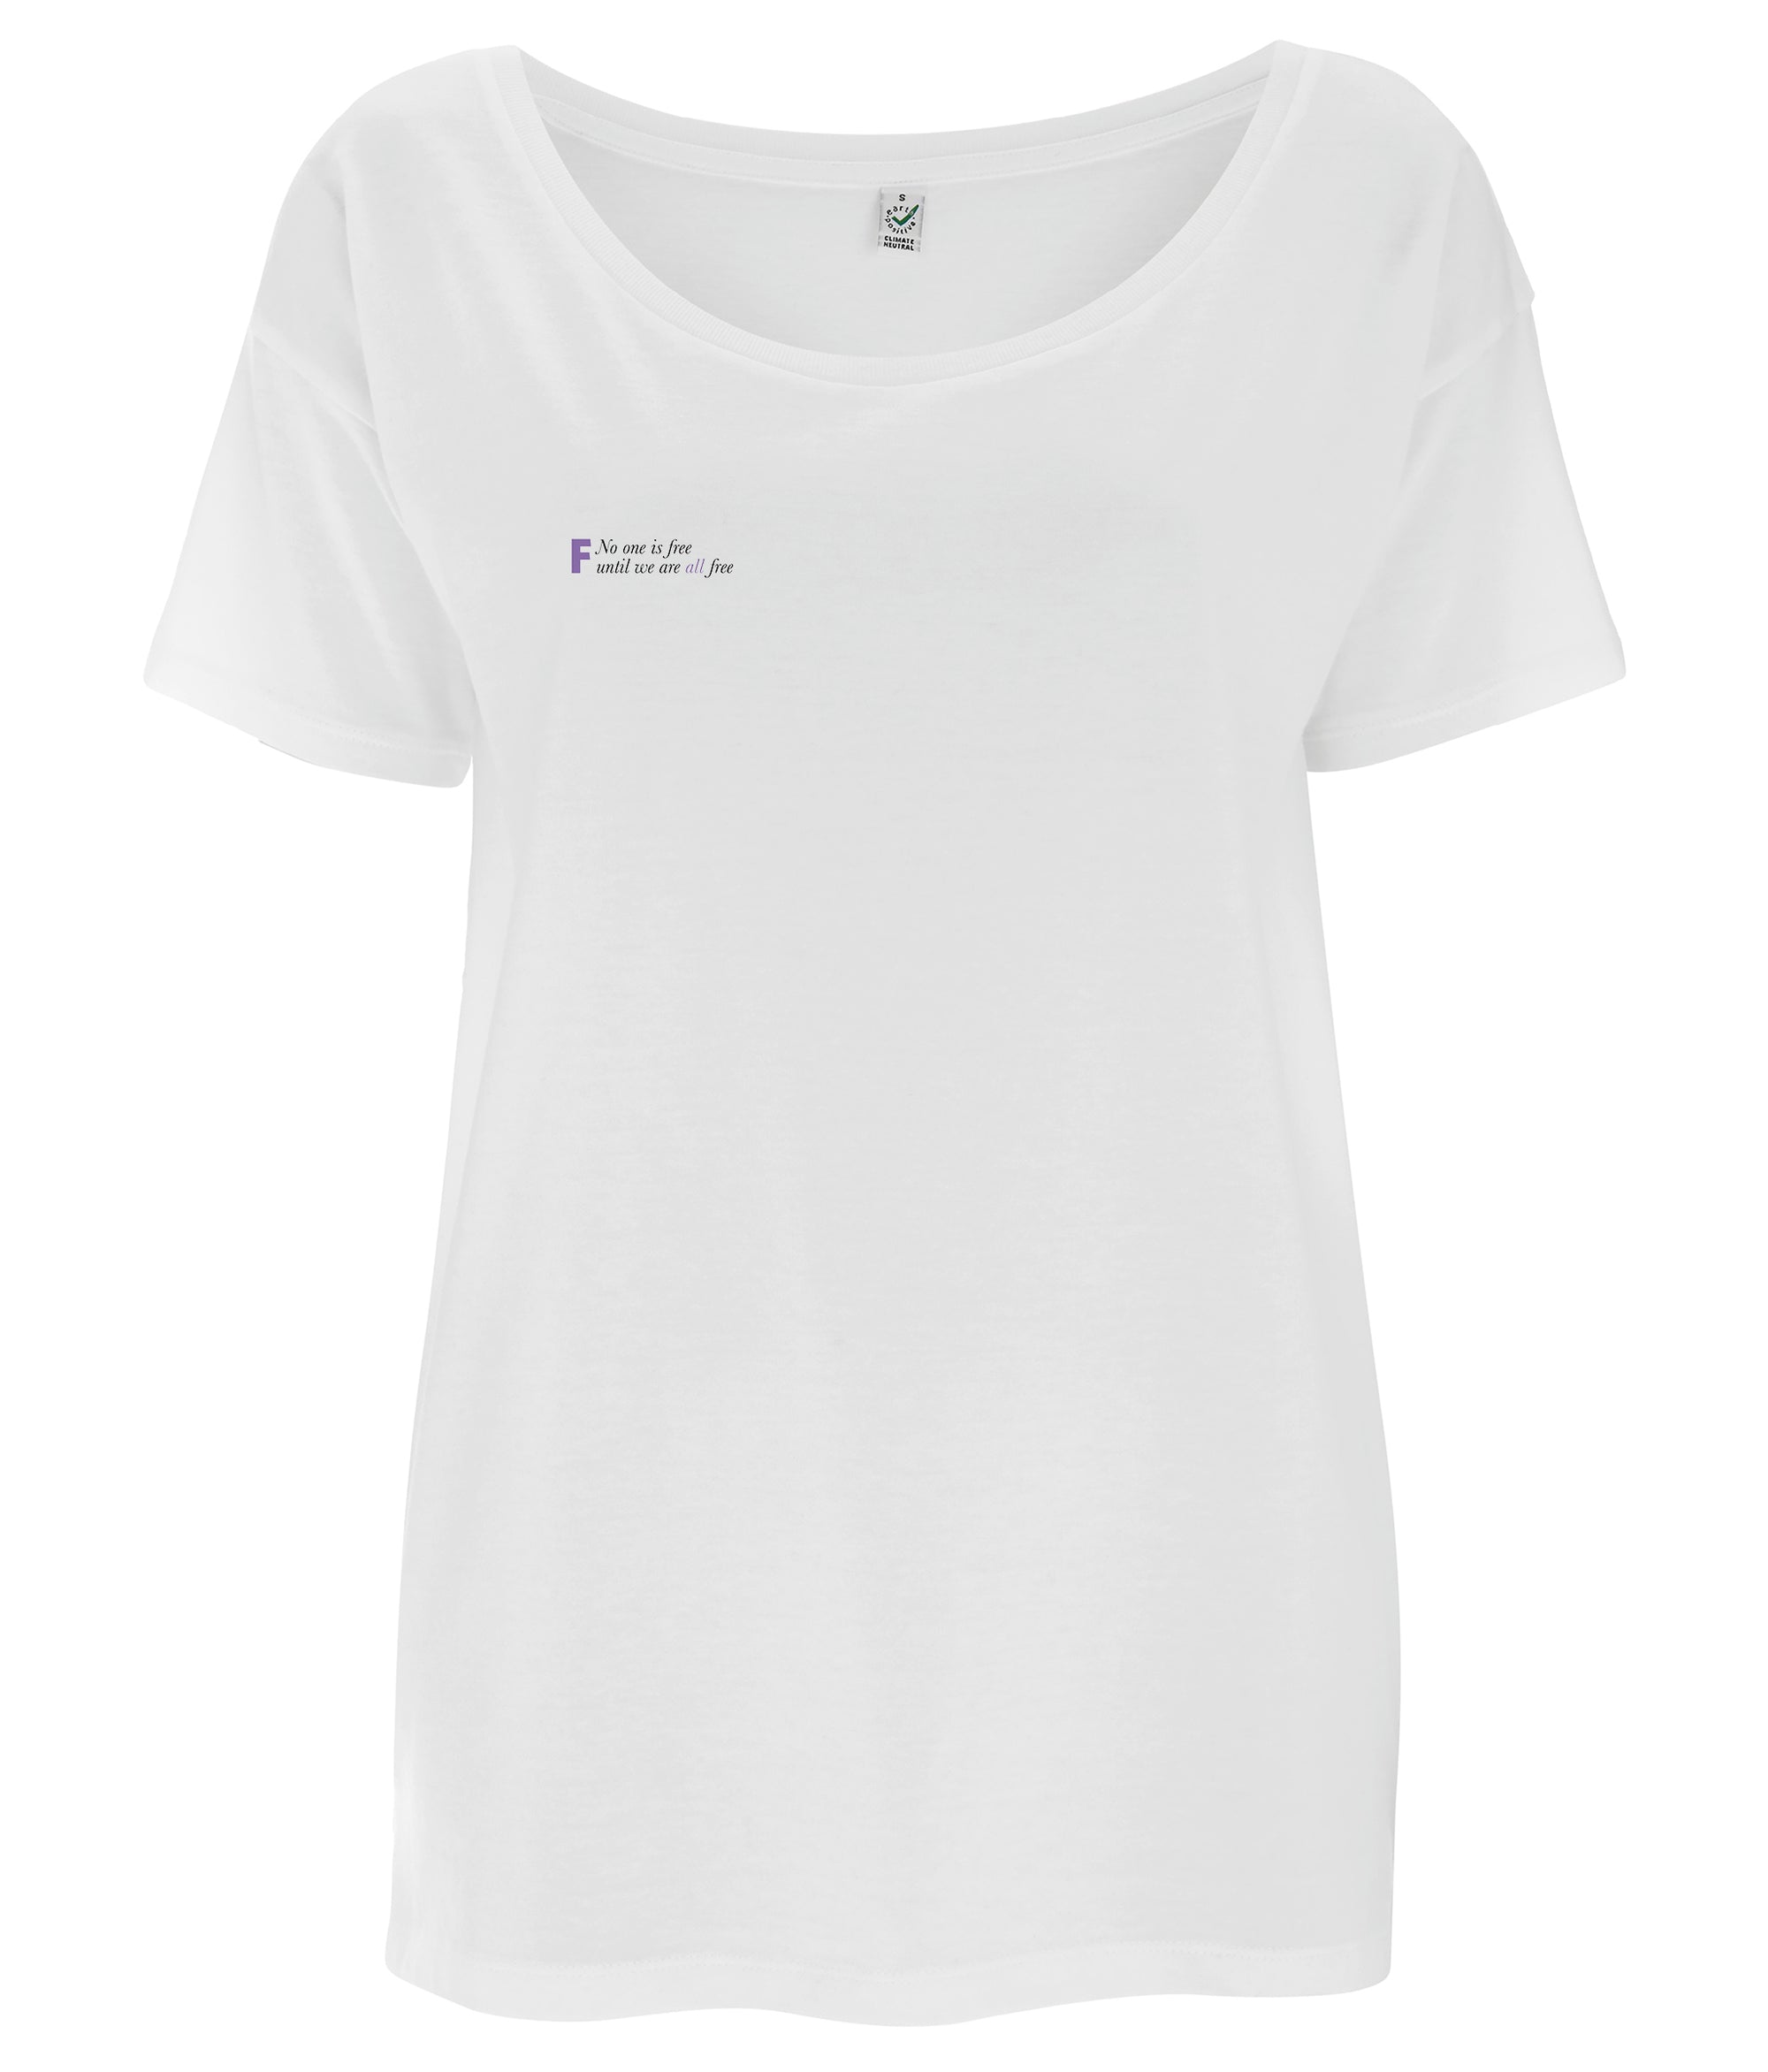 No One Is Free Until We Are All Free Tencel Blend Oversized Feminist T Shirt White